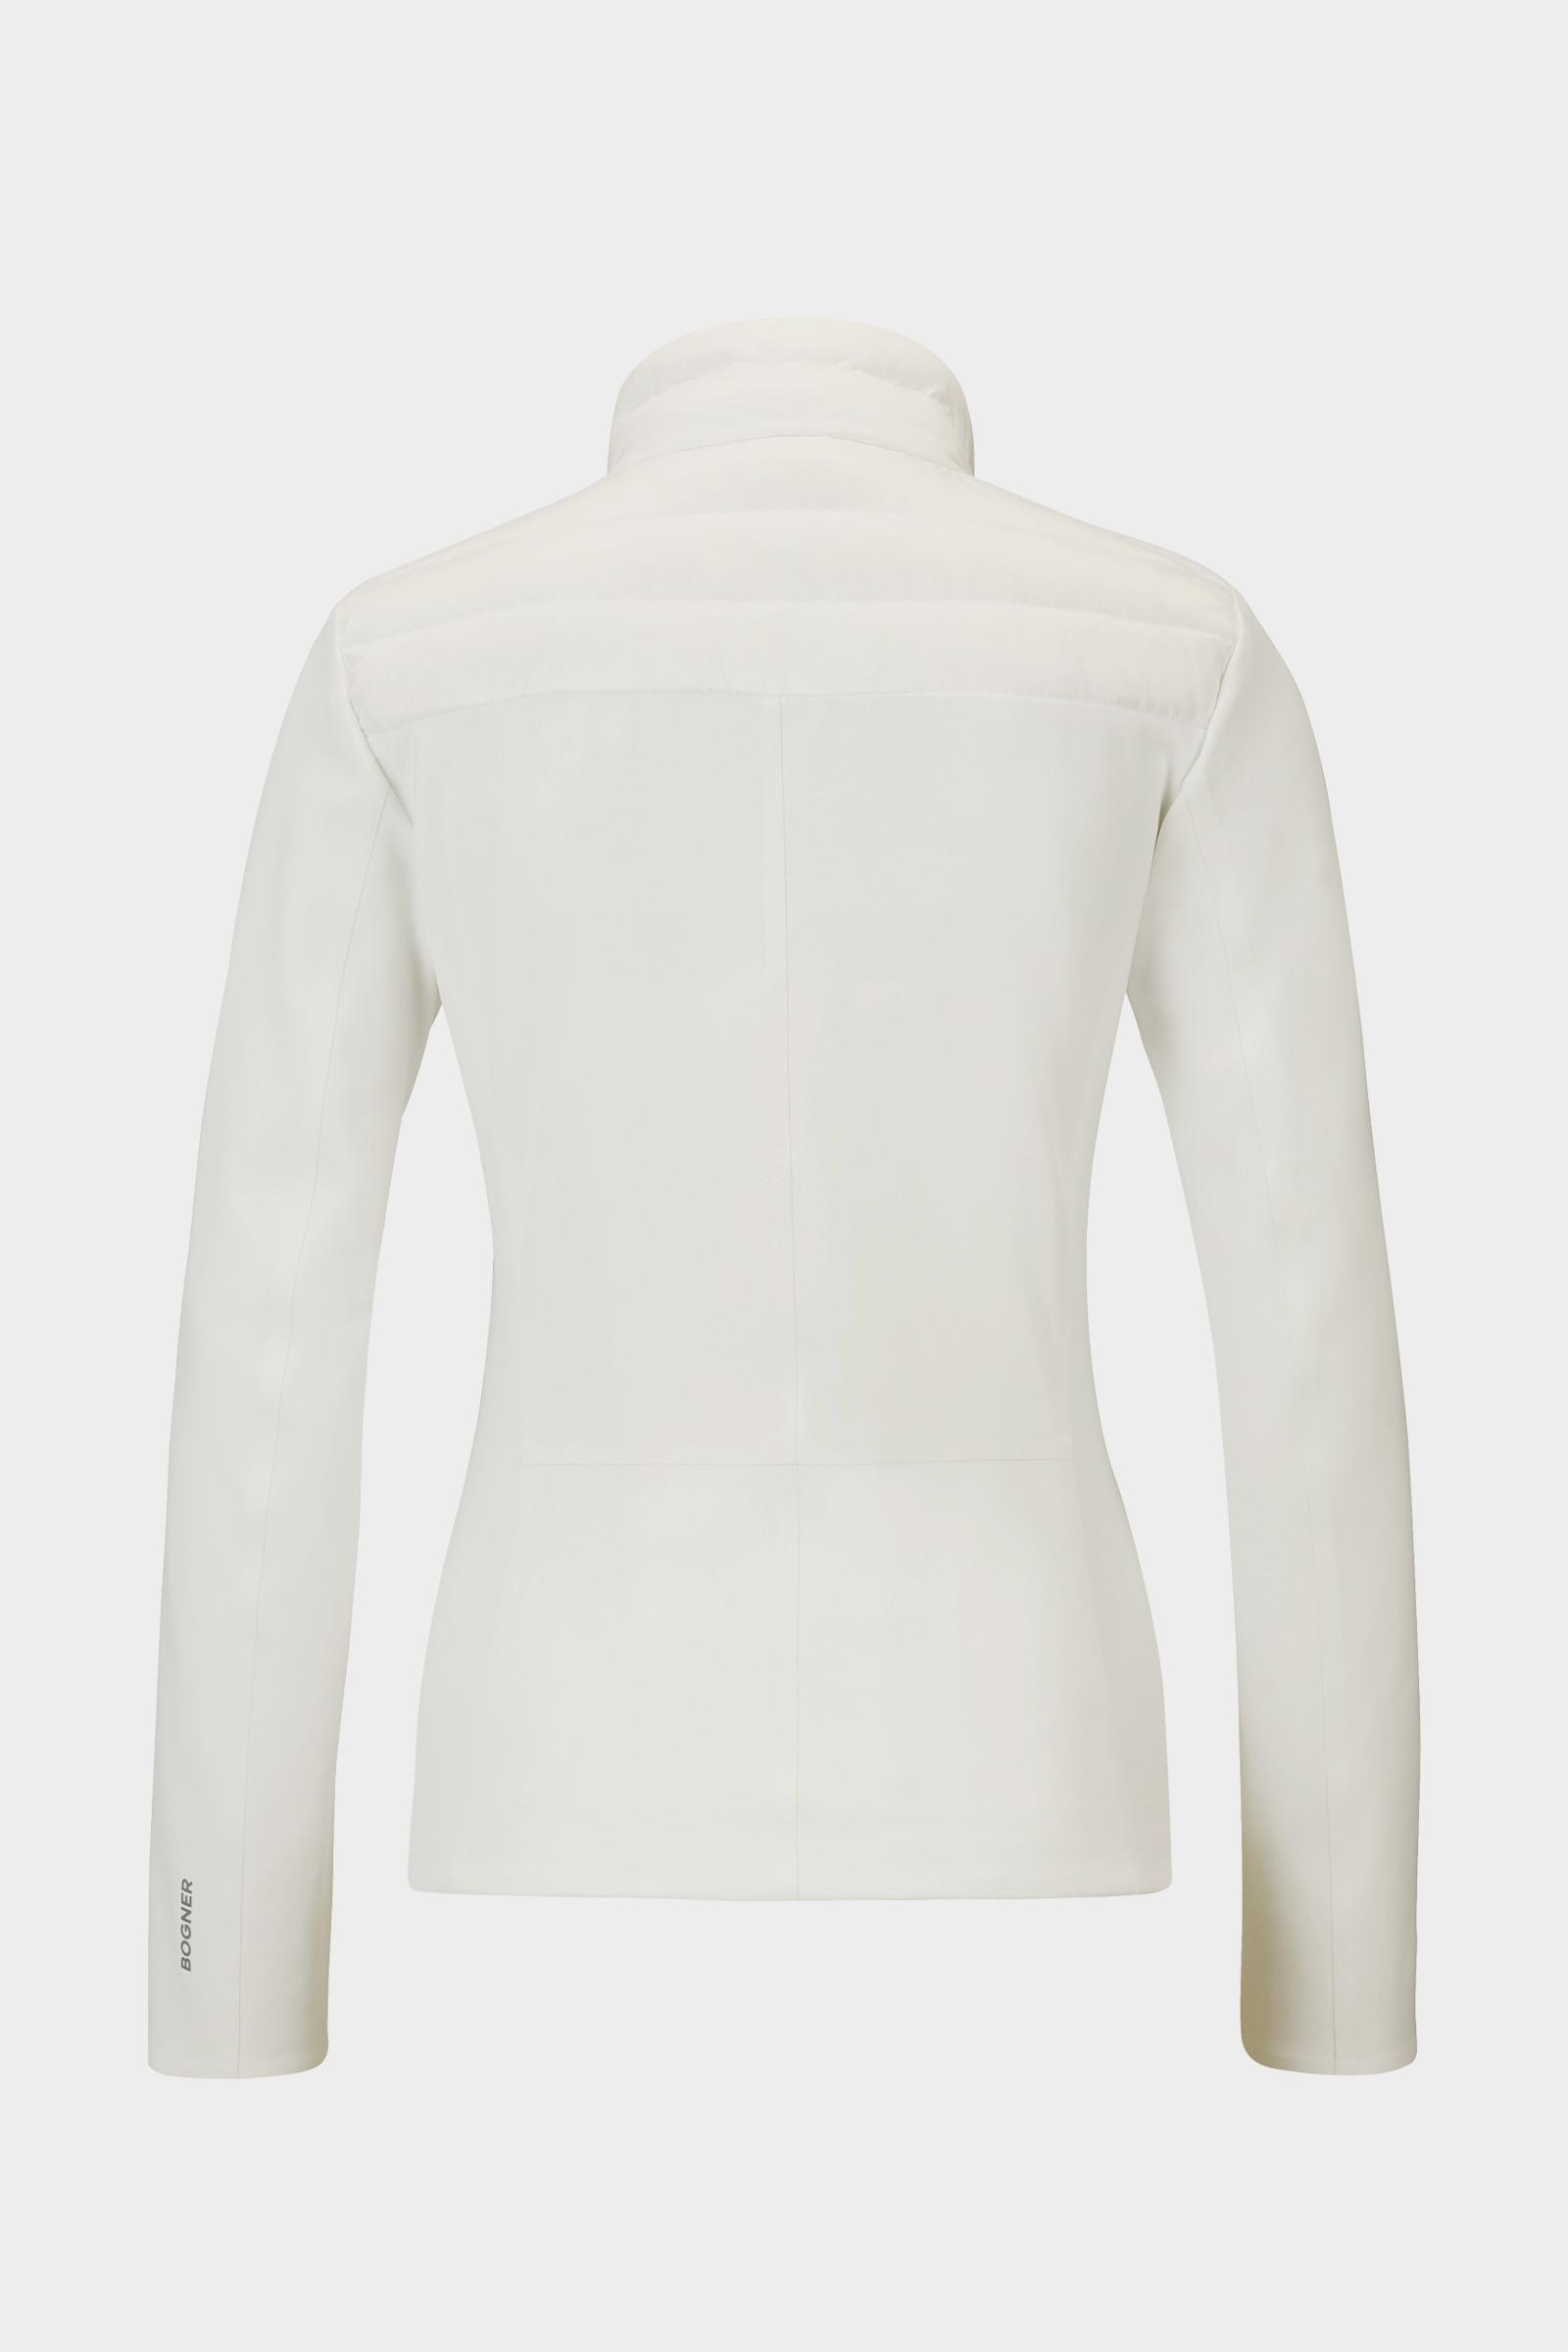 incredible prices 50% price reputable site Bogner Jacket Flynn In Off White